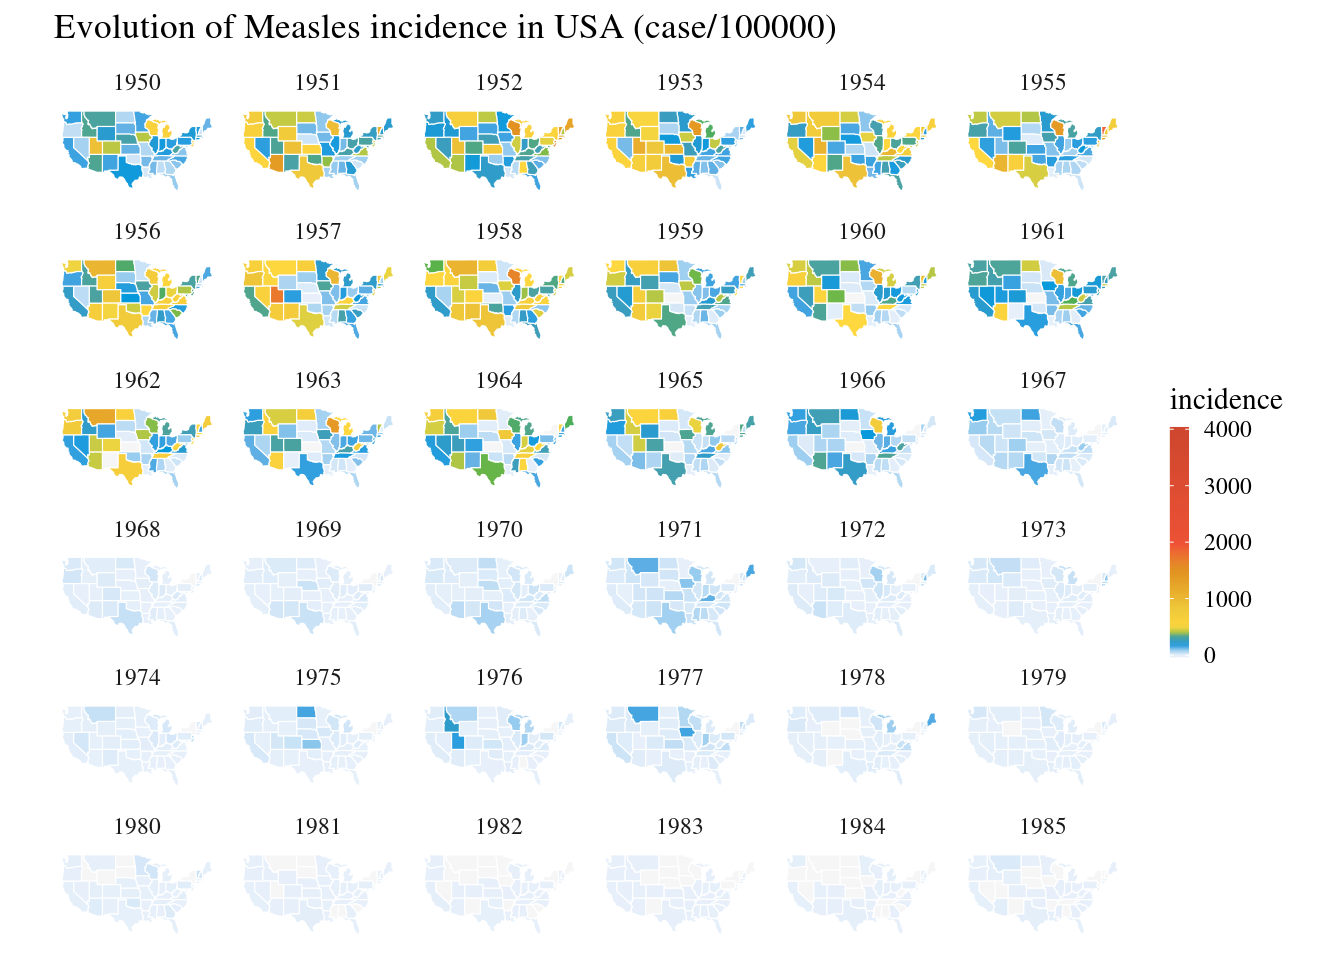 The impact of vaccines, case of Measles in USA